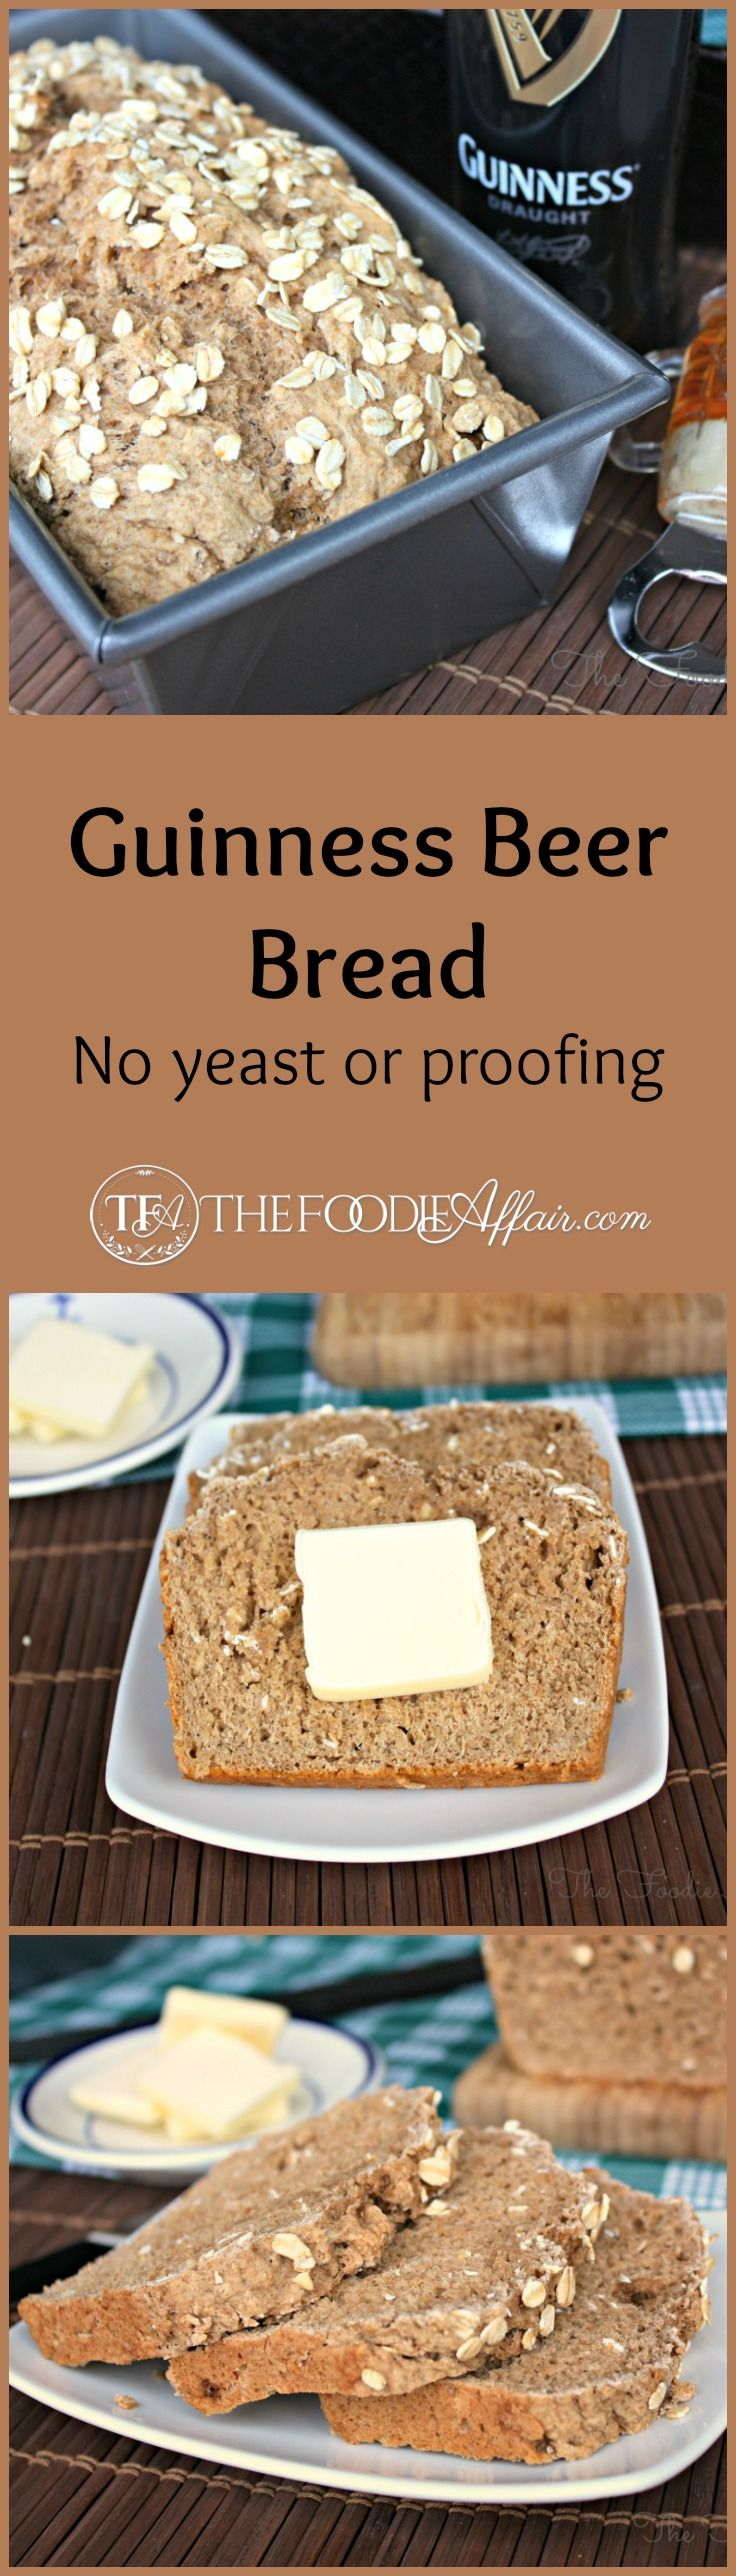 Guinness Beer Bread, a delicious simple quick bread can be baked in under an hour. Fill your house with the wonderful aroma of baking bread! The Foodie Affair #stpatricksday #bread #guinness